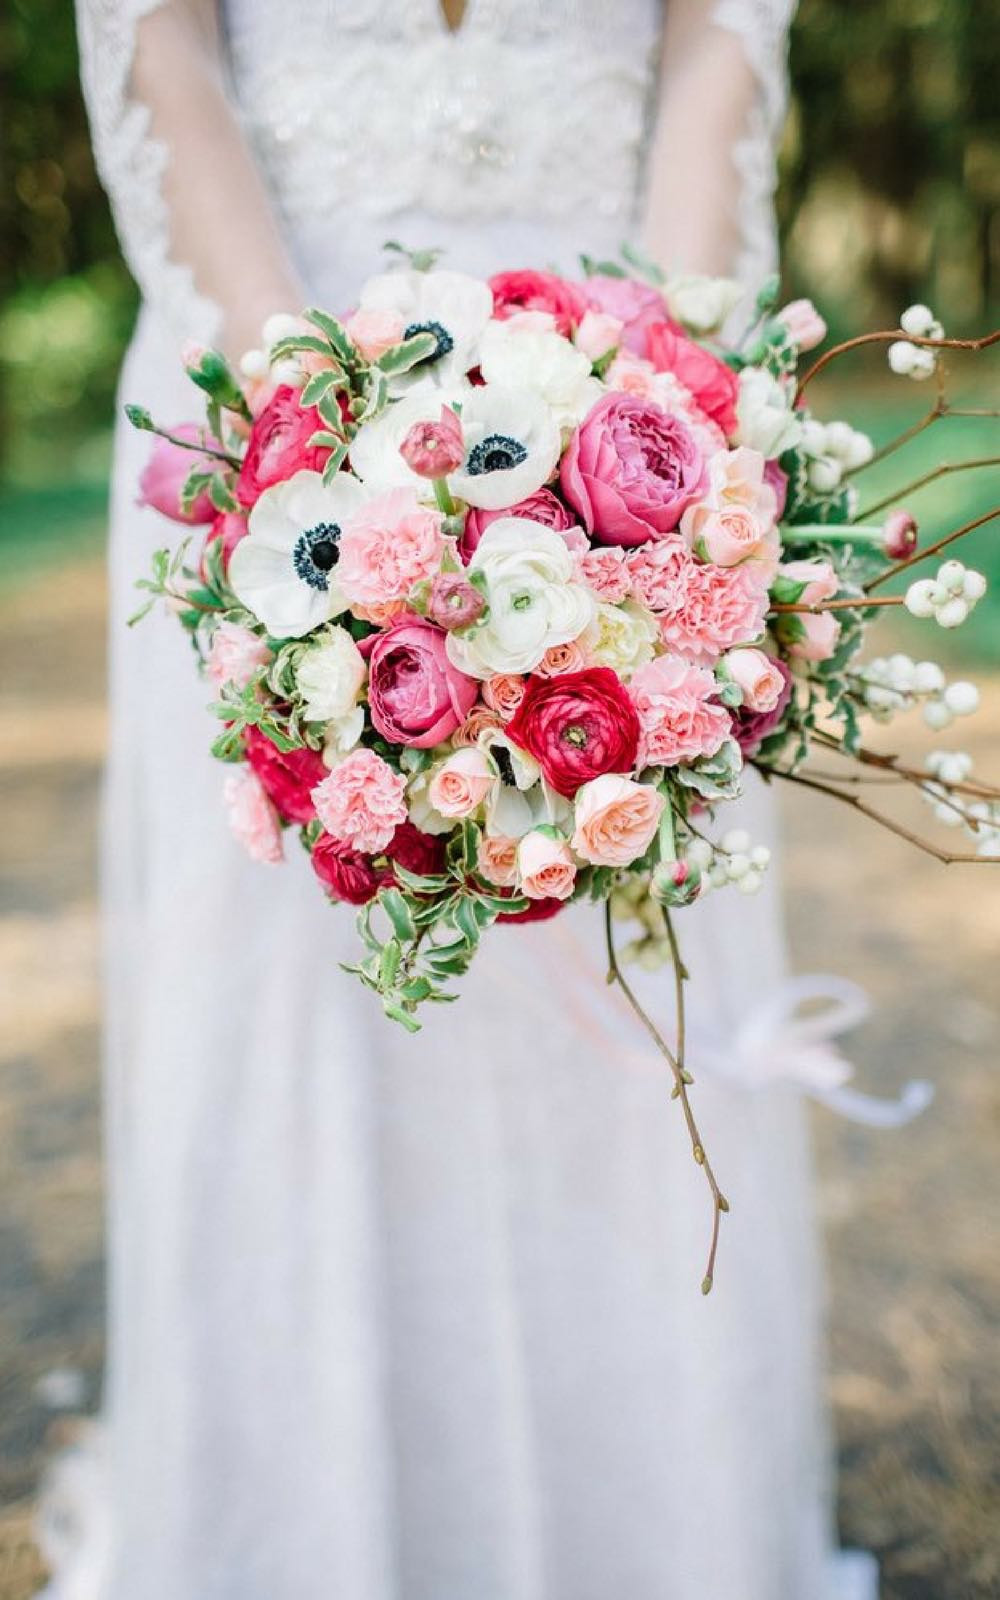 Best ideas about DIY Flower Wedding . Save or Pin Fifty Flowers Review How I Did My Own Wedding Flowers Now.